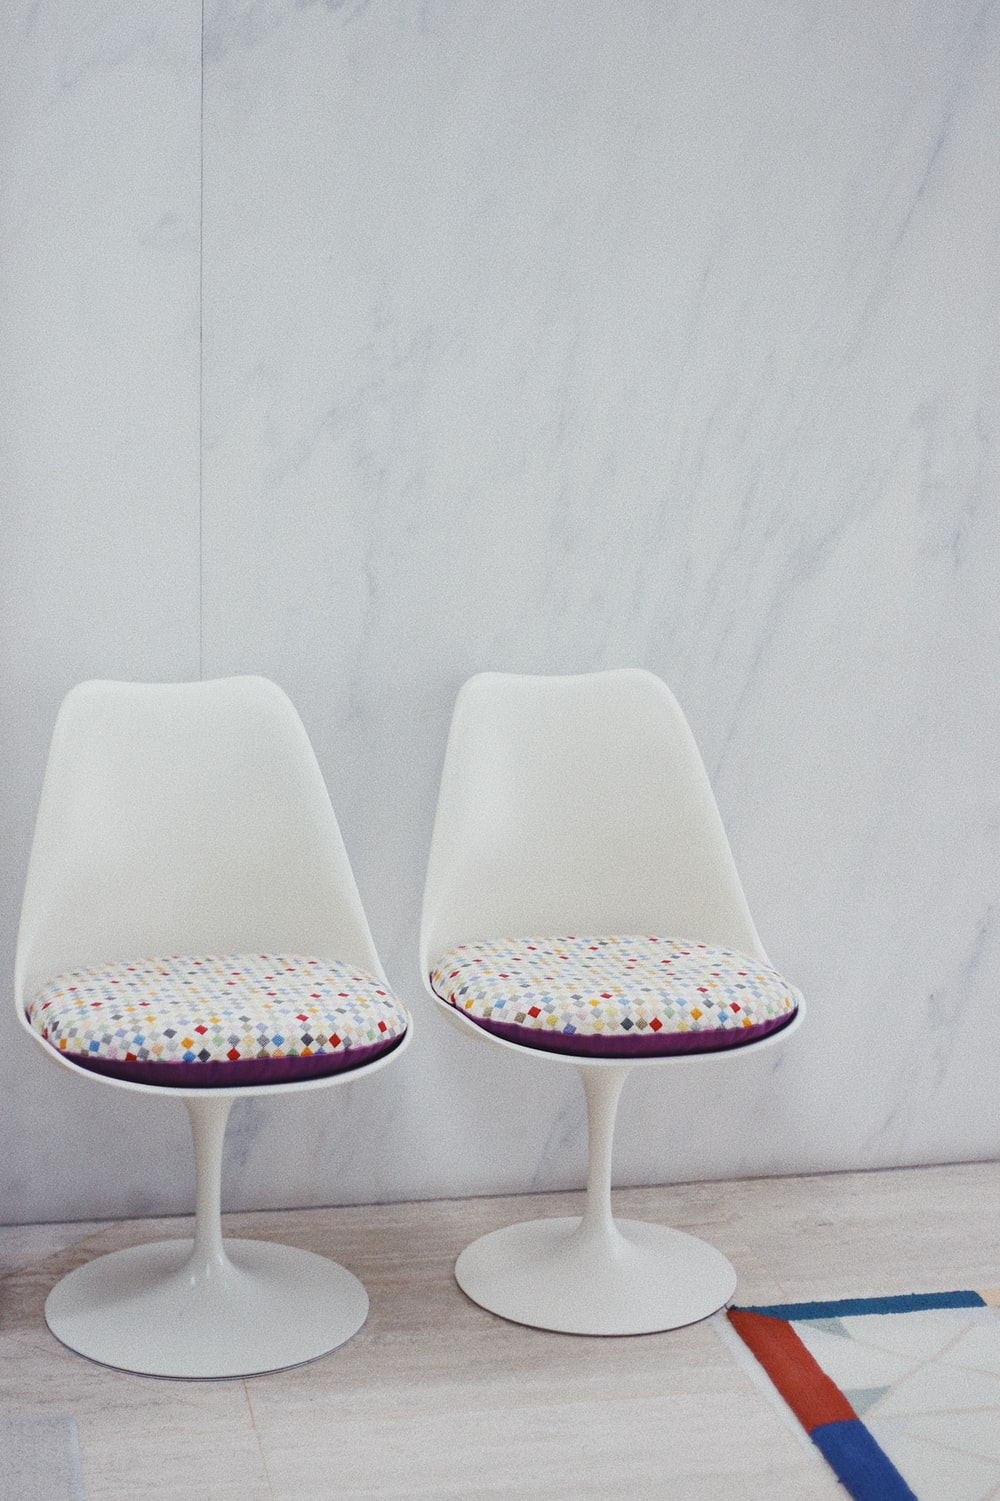 white and multicolored padded armless chairs